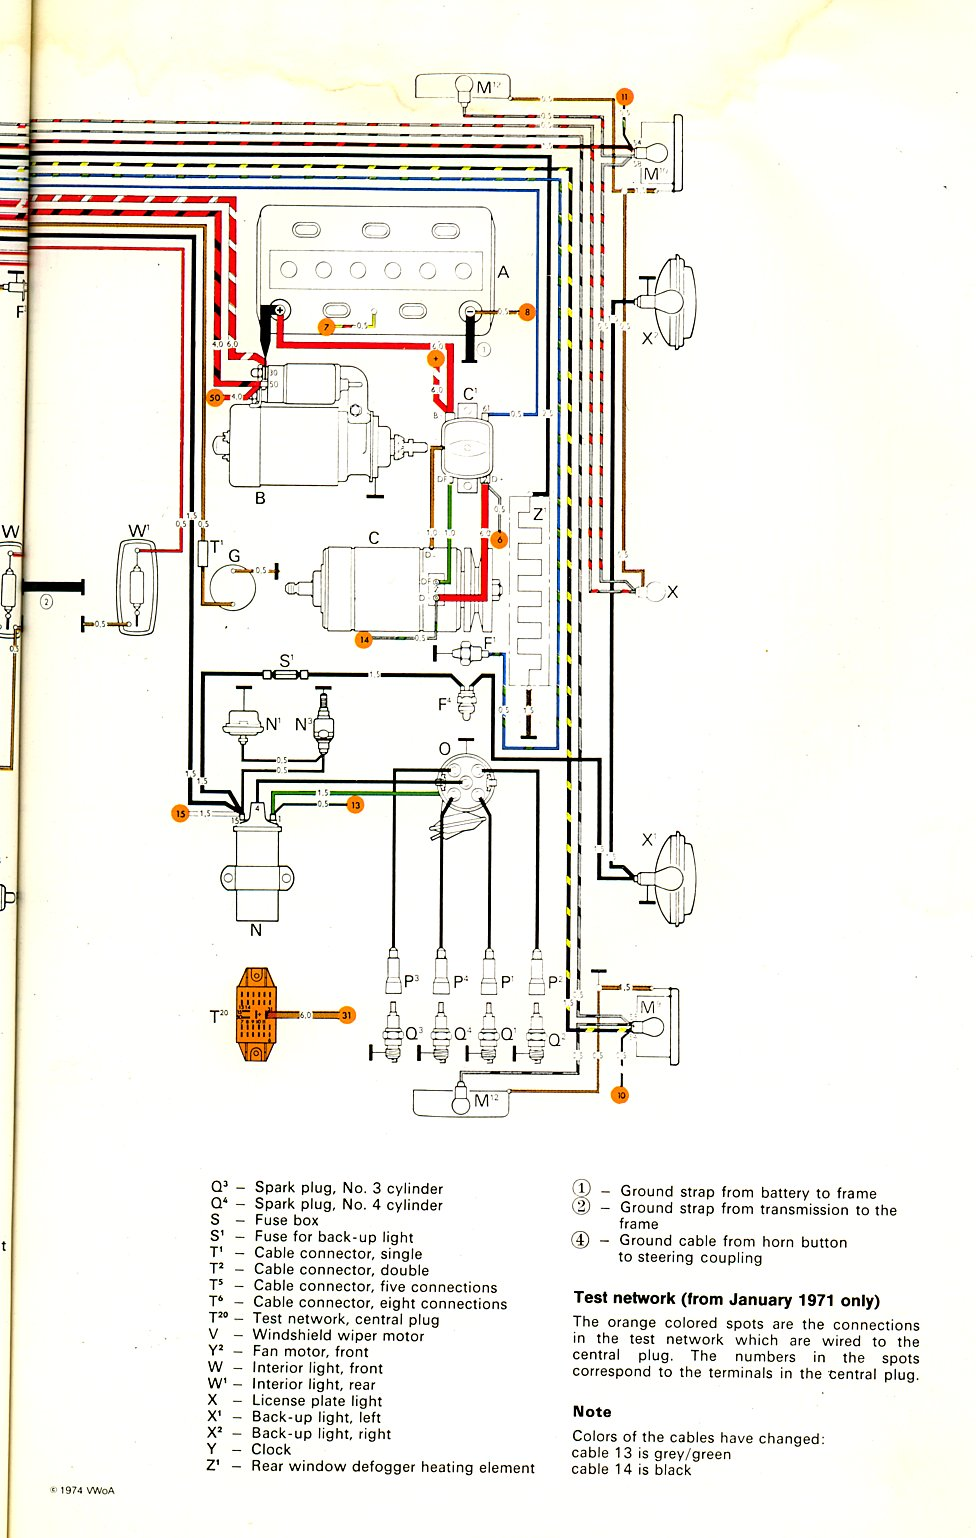 baybus_71b corvette fuse box diagram corvette free wiring diagrams Vanagon Interior Light Wiring at soozxer.org